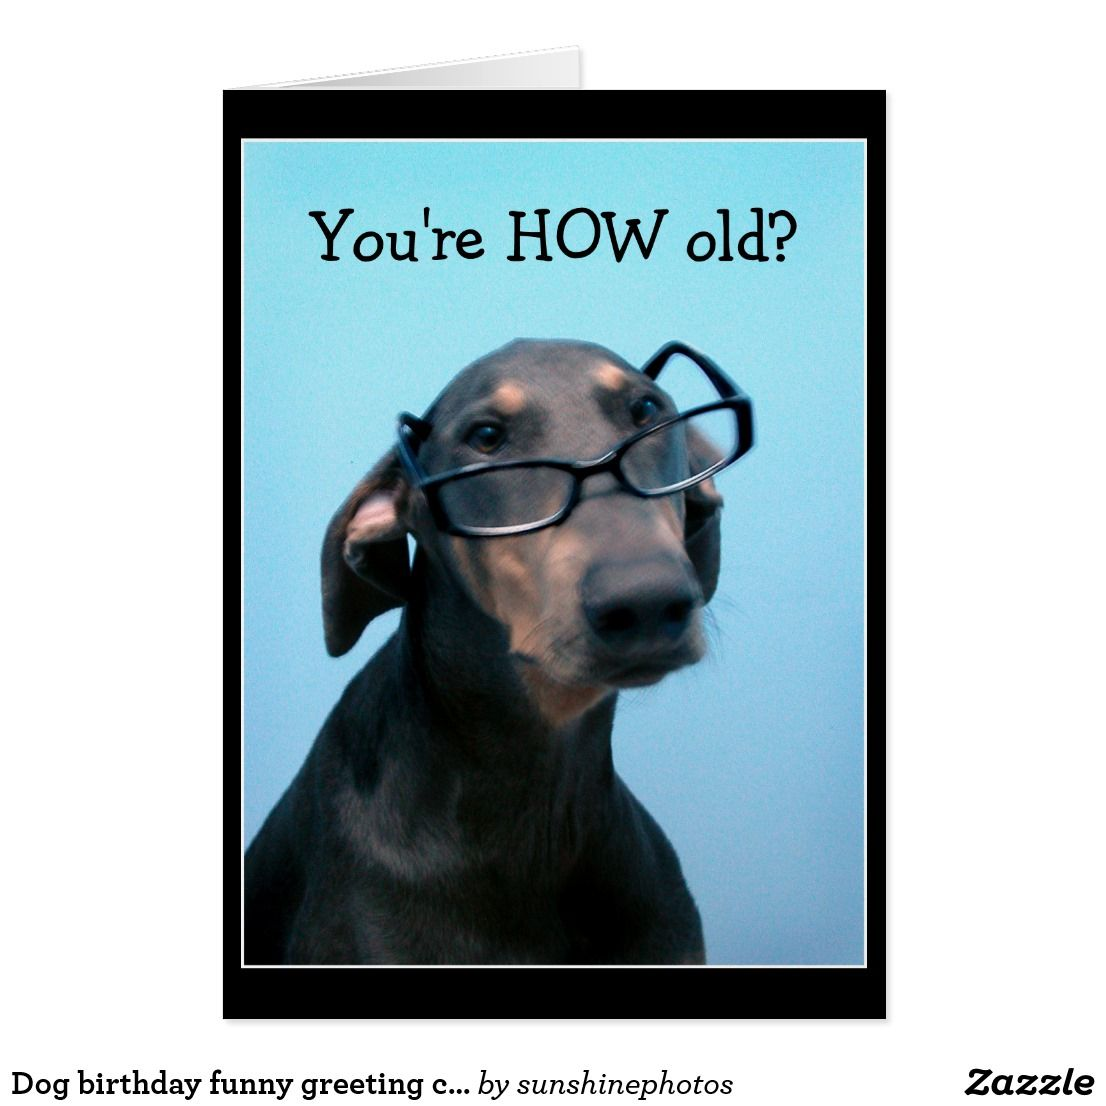 Dog birthday funny greeting card dog birthday birthday funnies dog birthday funny greeting card kristyandbryce Choice Image